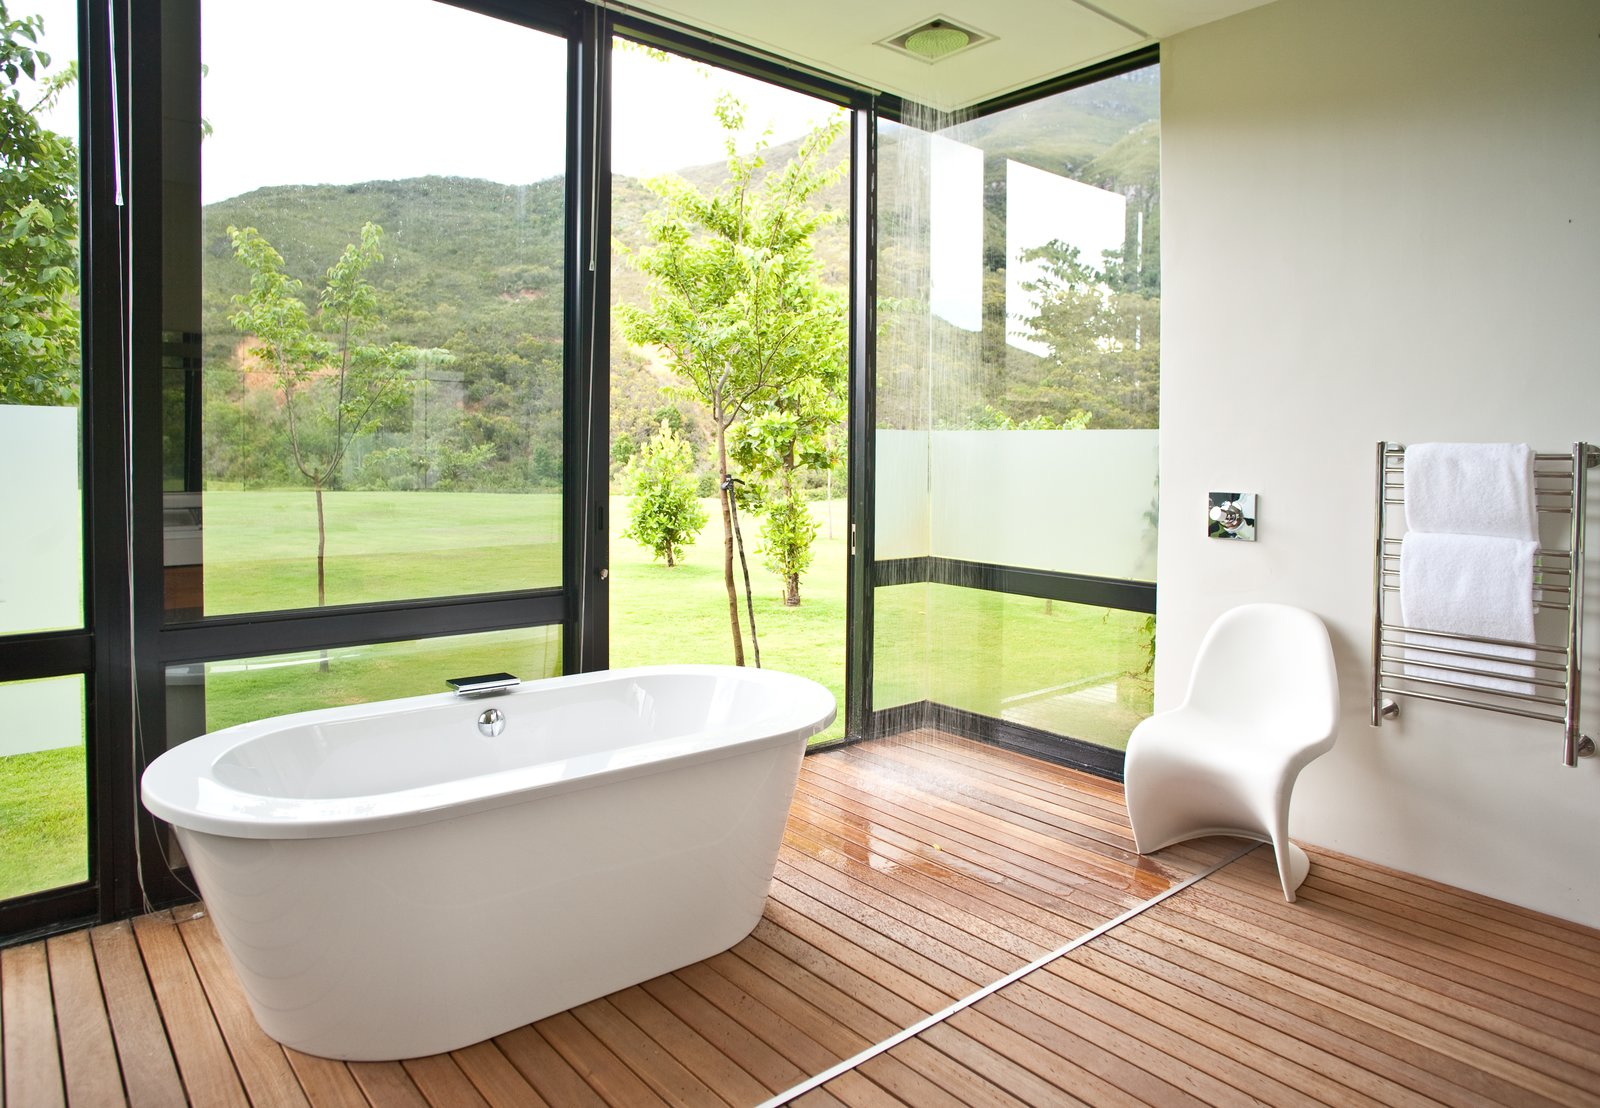 The guest bathrooms are outfitted with showers and tubs that feel close to nature. This South African Villa Lets You Bask in Divine Views - Photo 7 of 10